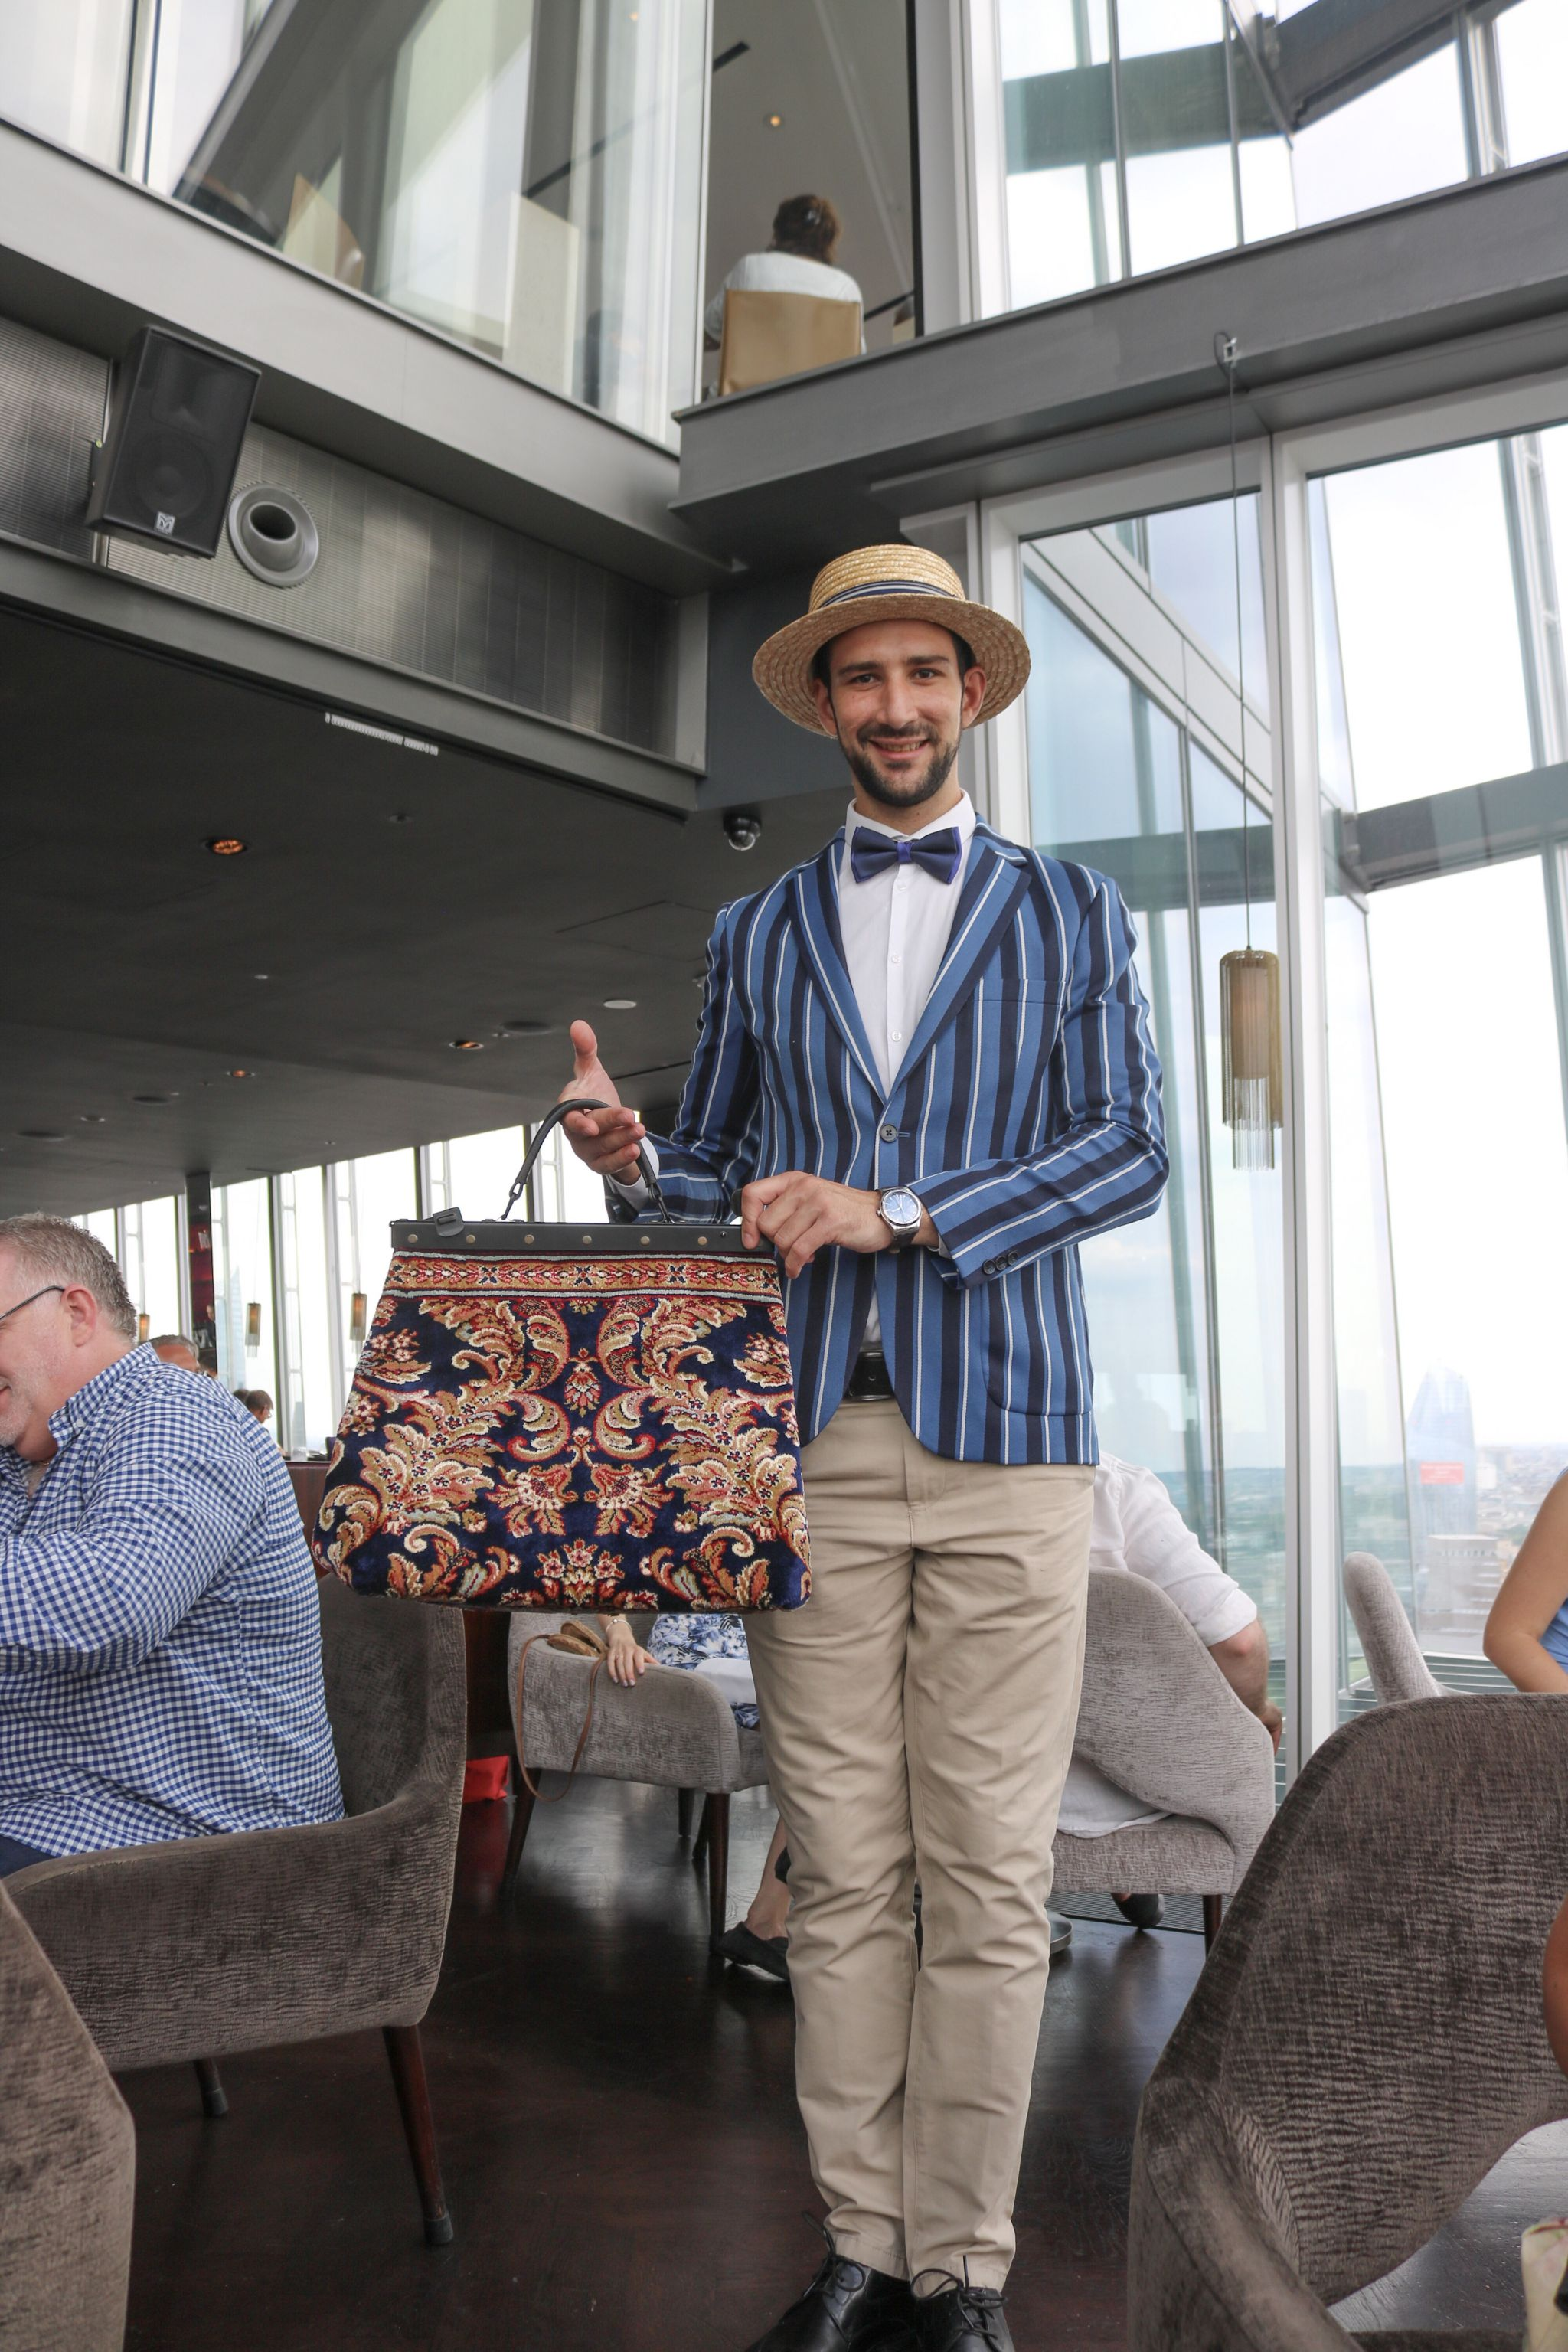 The Mary Poppins themed Afternoon Tea at Aqua Shard, The Shard London.